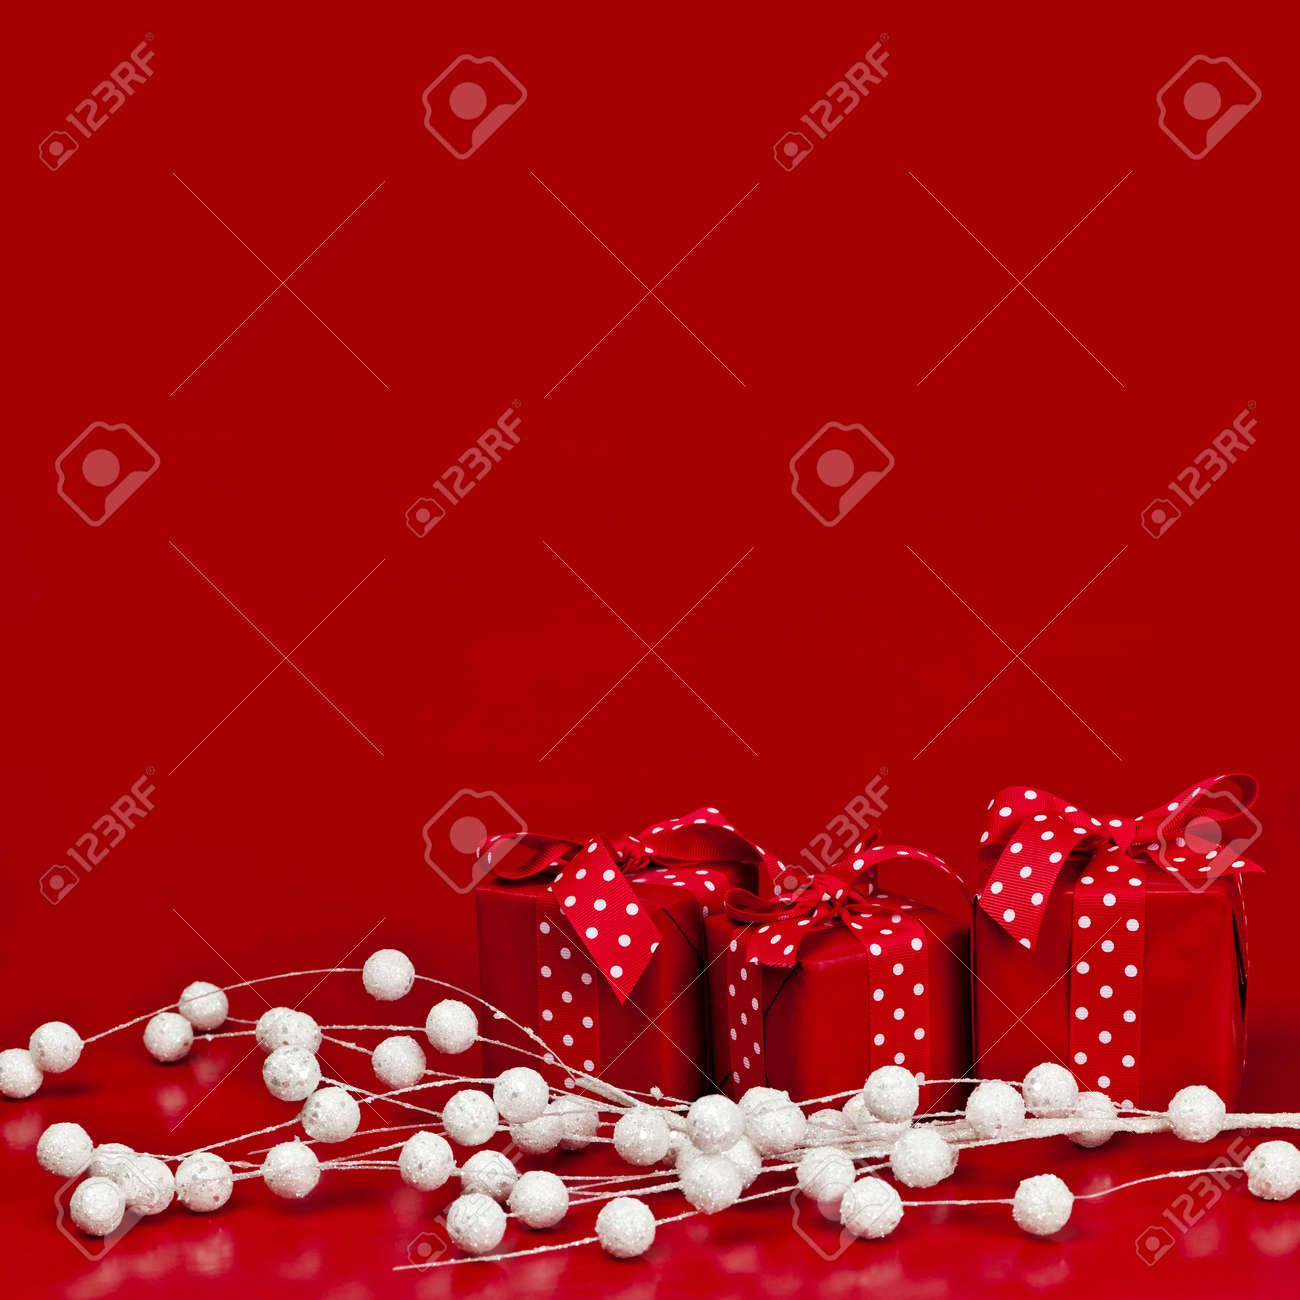 Red Christmas background with wrapped presents and decorations Stock Photo - 16654681